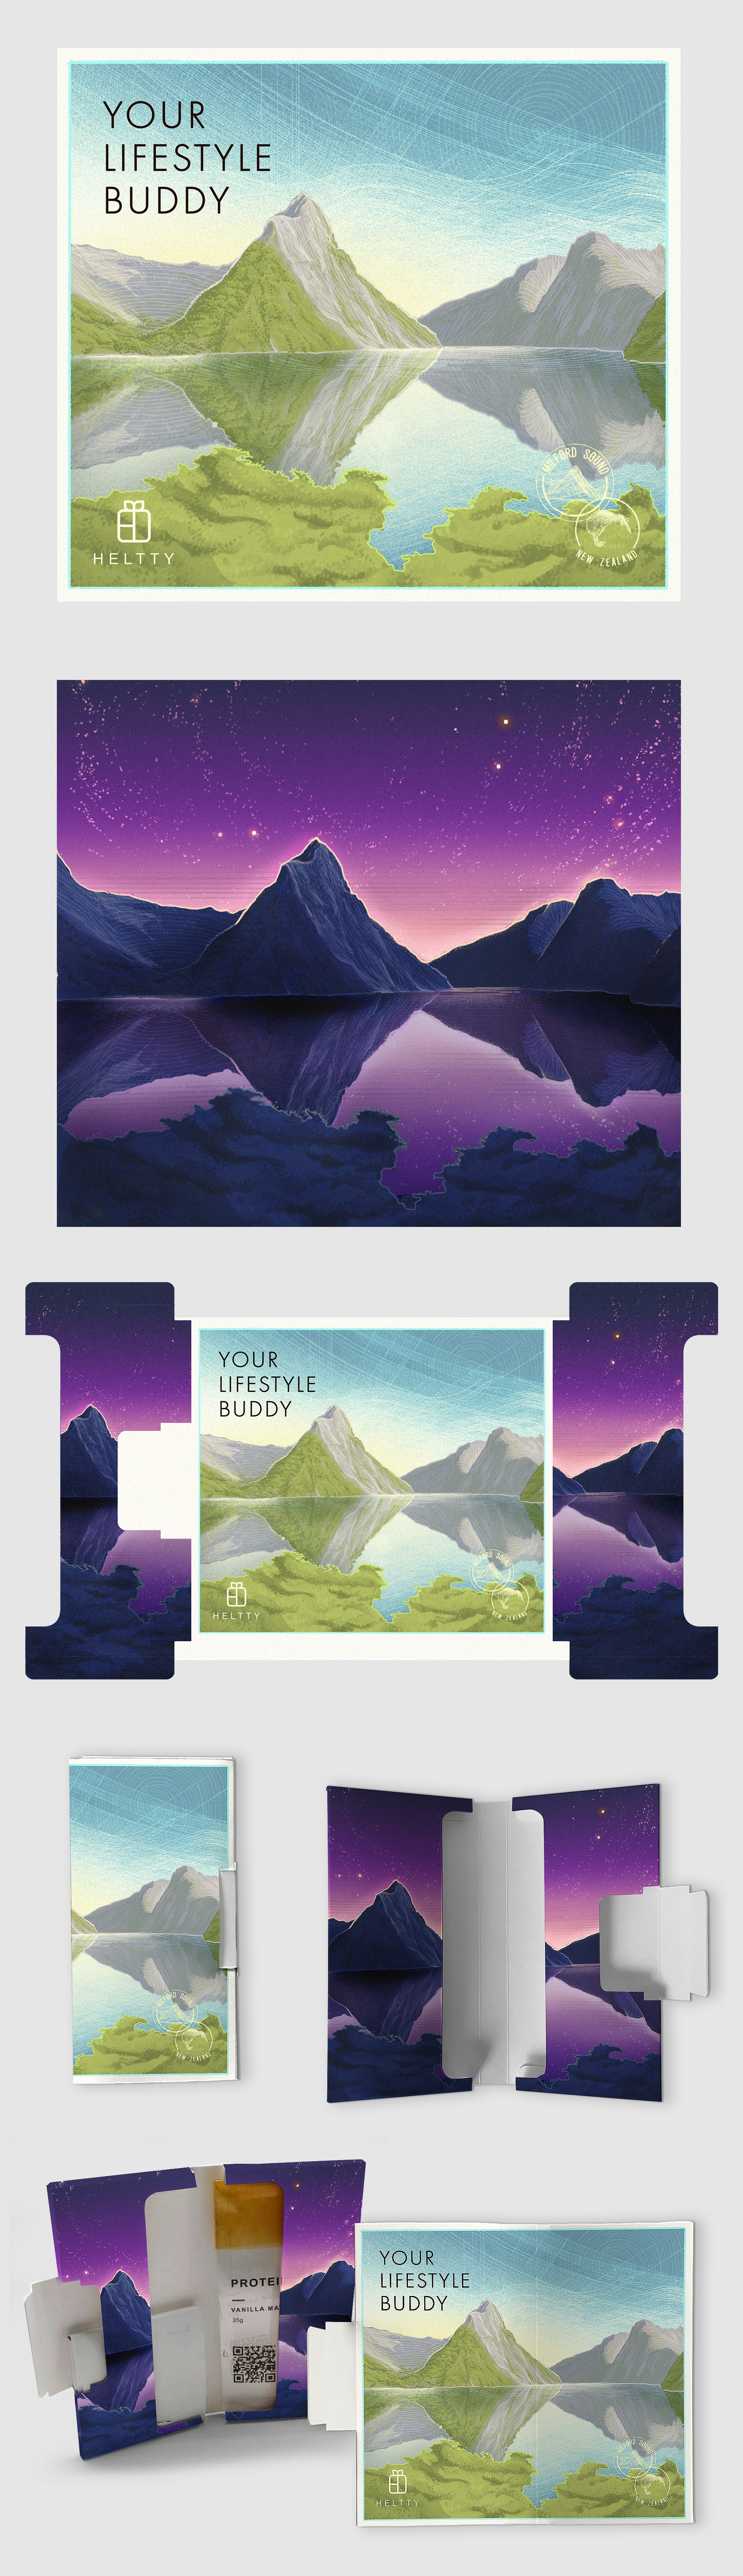 Two Heltty landscapes